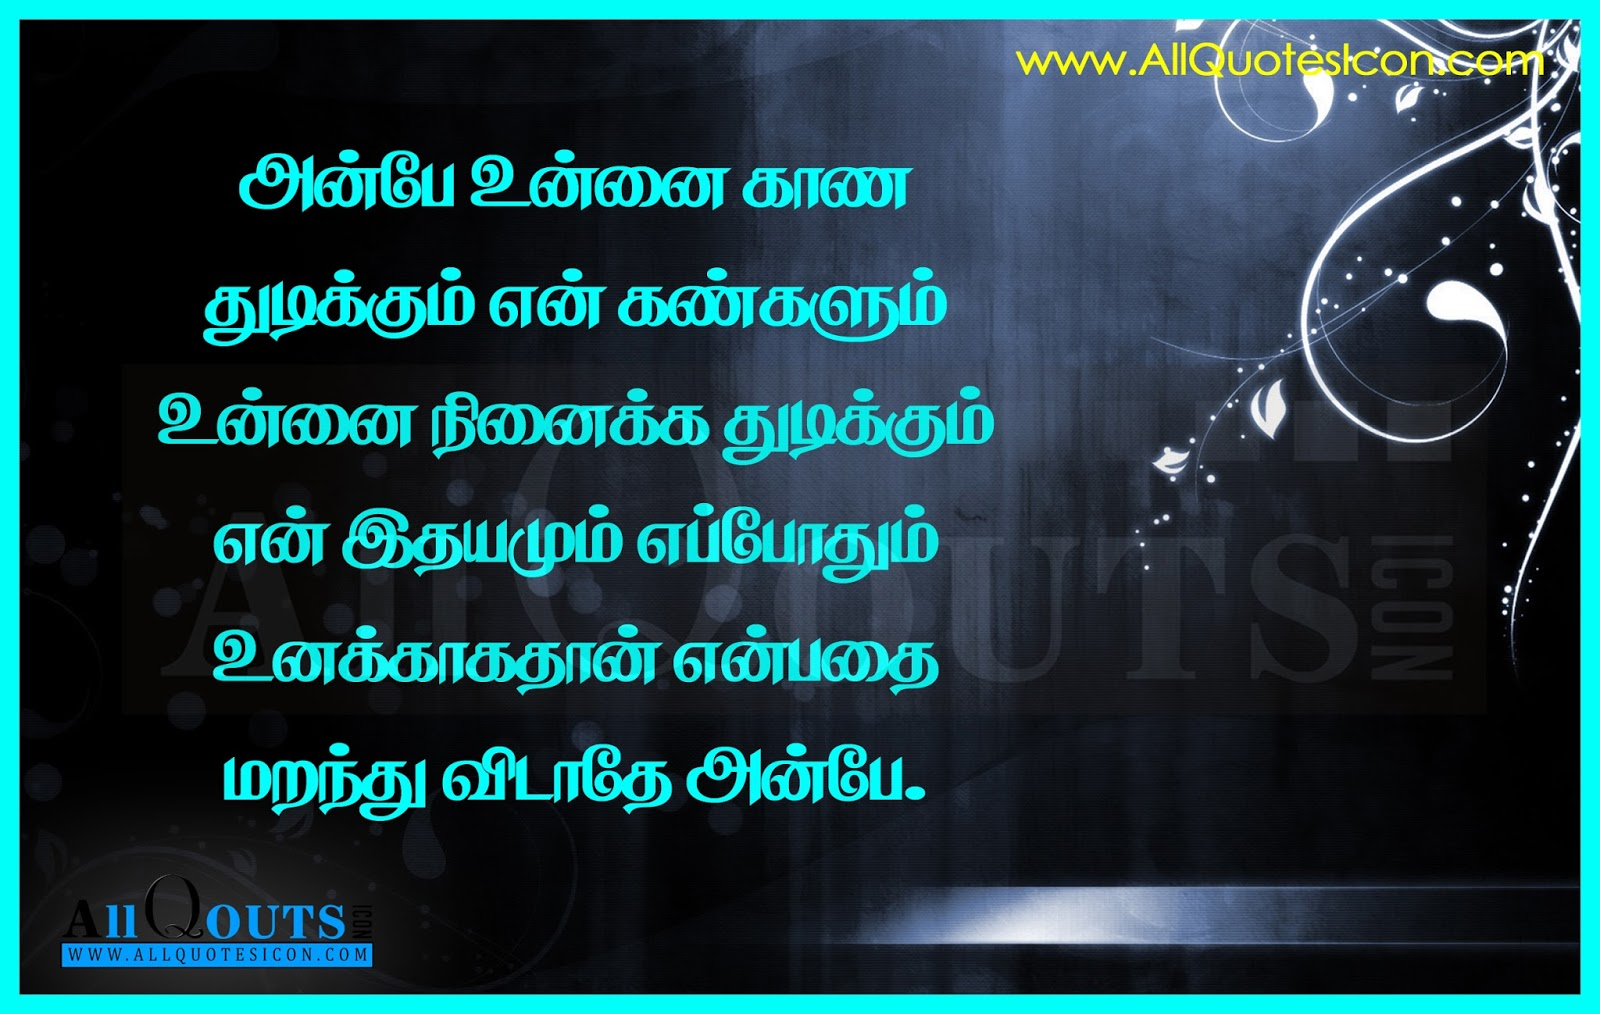 Best Life Quotes In Tamil Hd Wallpapers Inspirational Quotes About